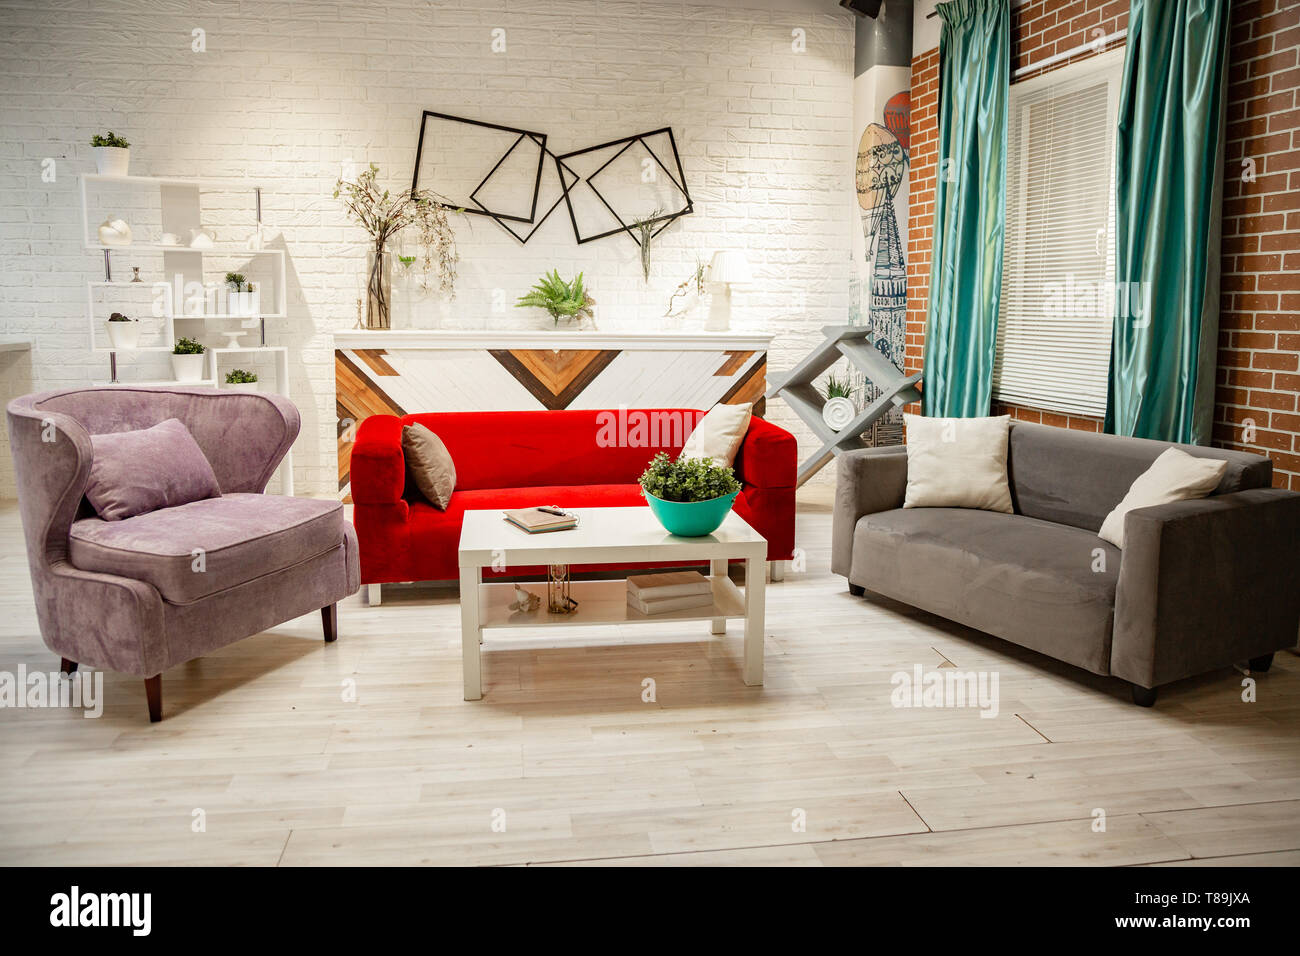 Photo studio in the style of the living room. Classic furniture, sofa, armchairs fireplace. Stock Photo